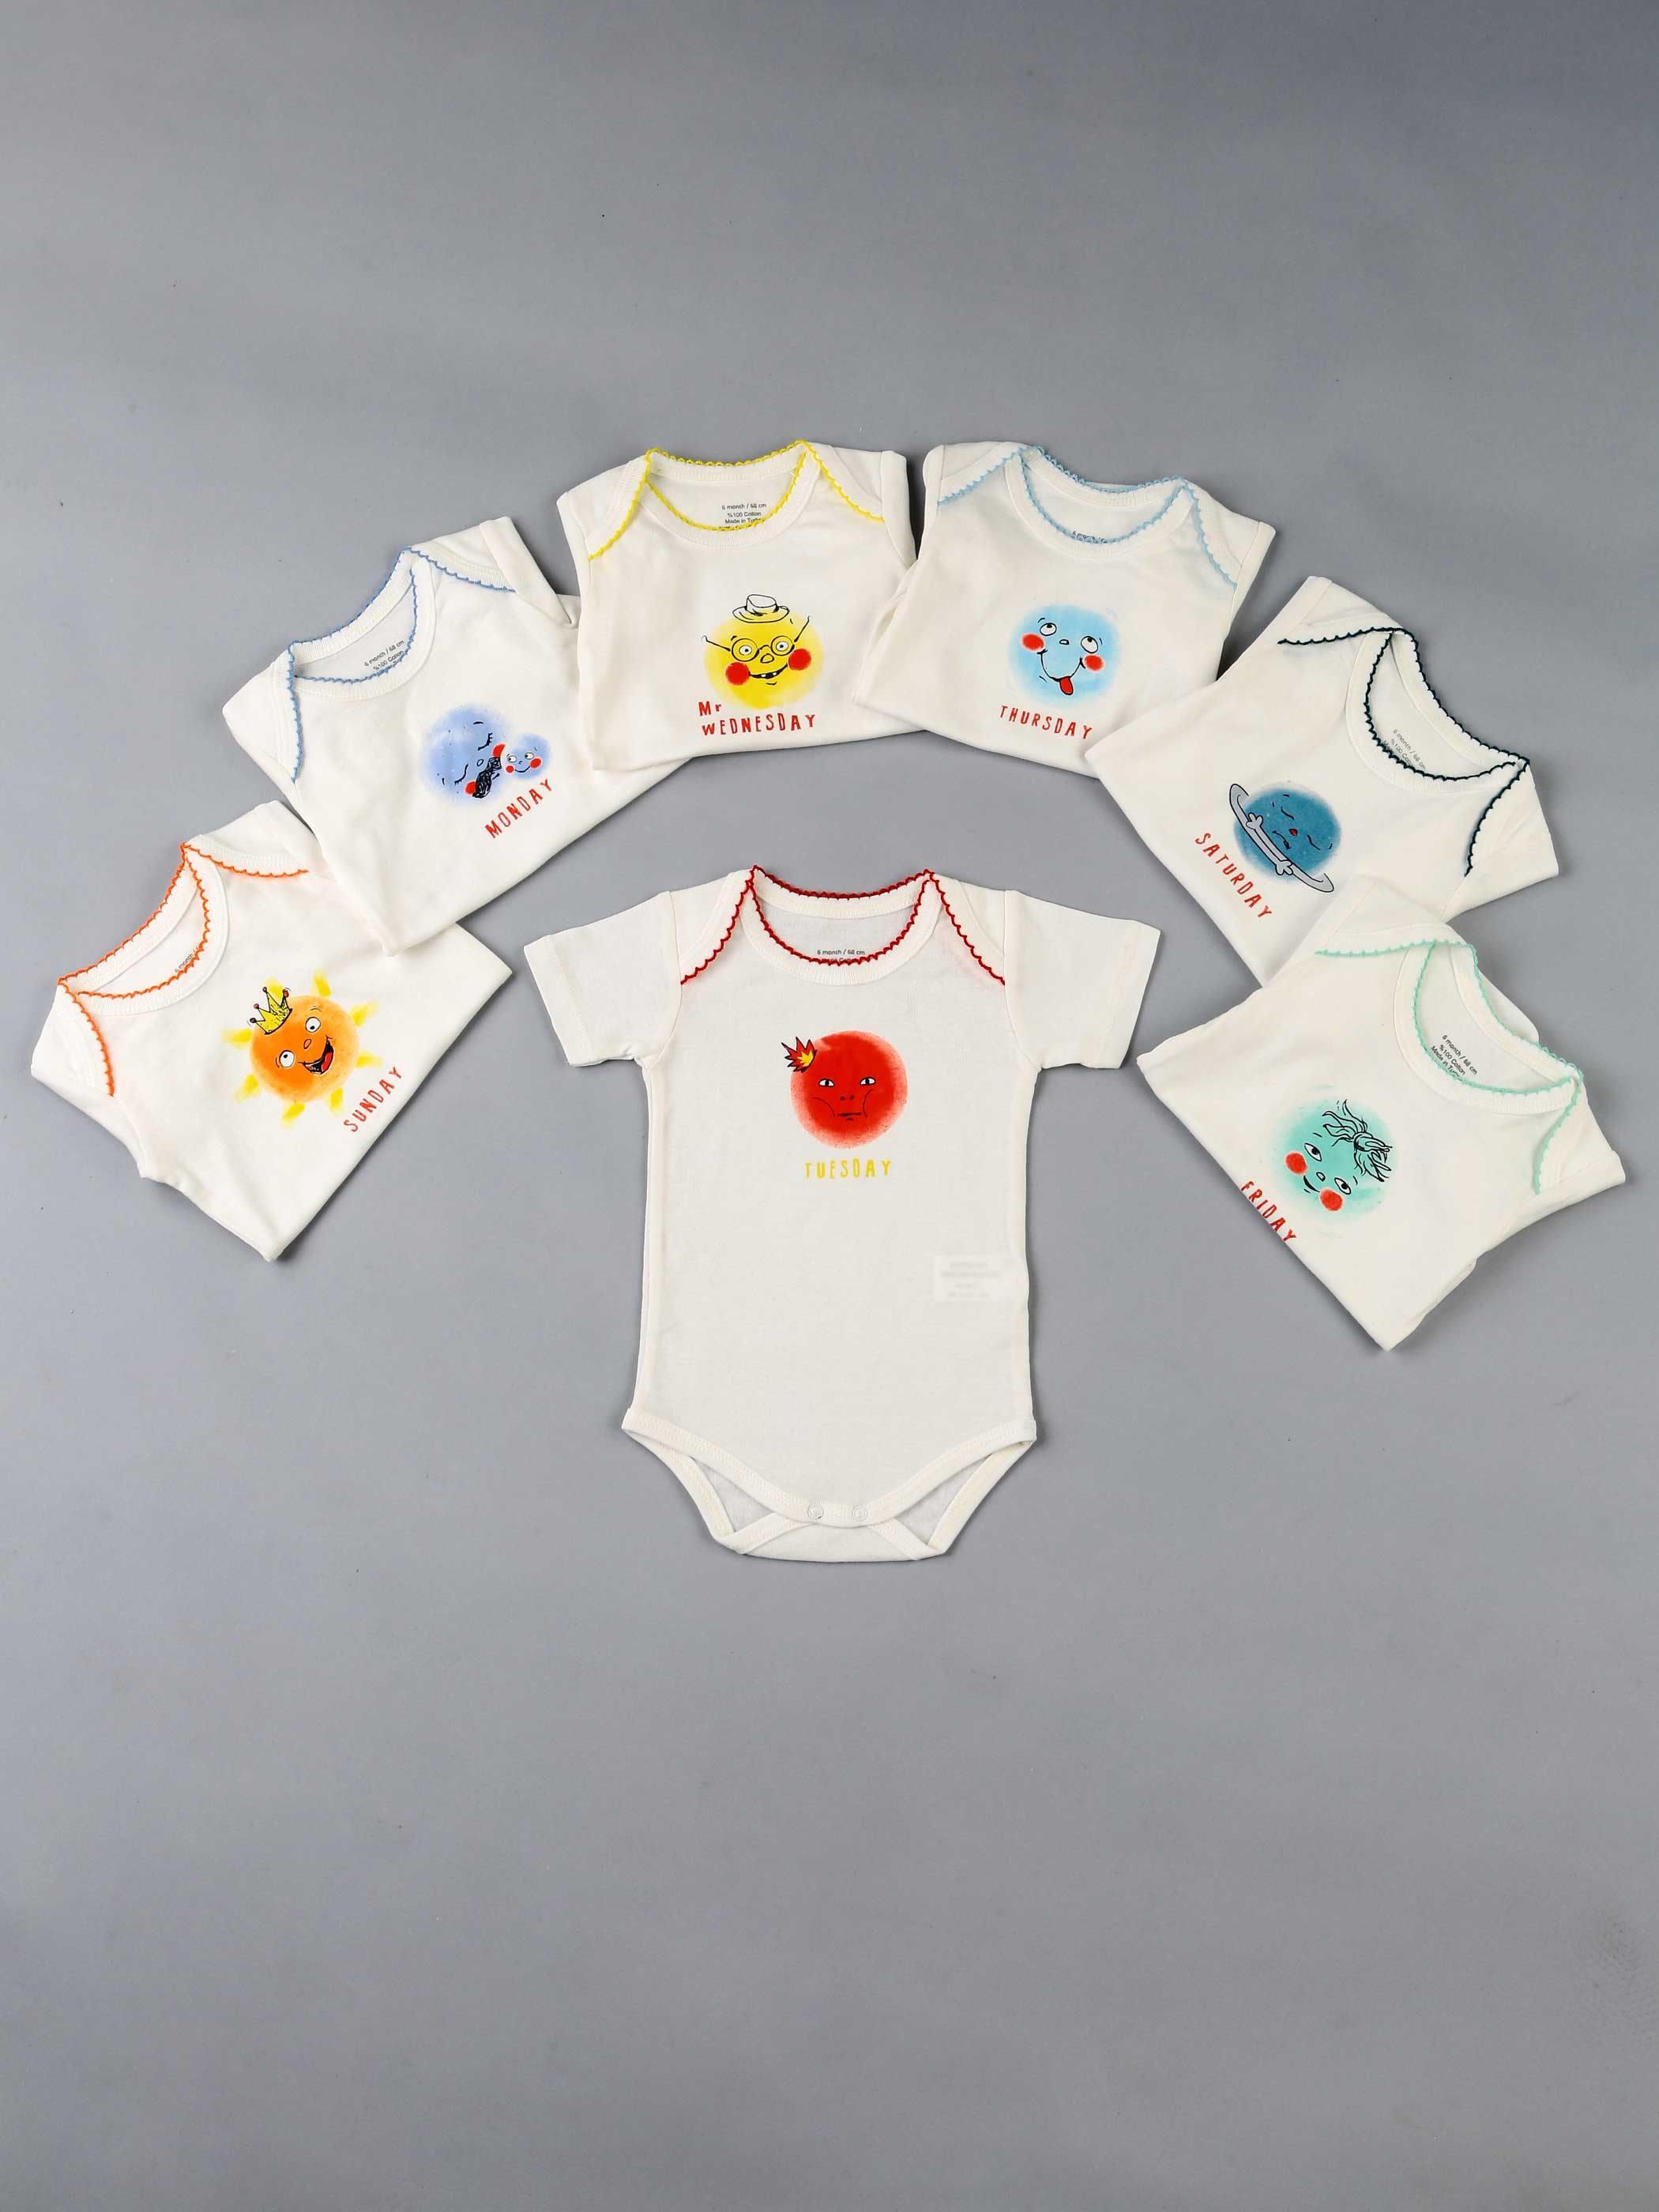 Baby Clothes 7 Pcs/lots Unisex Newborn Boy & Girl Rompers 7 Days Of Week Spesial Cotton Bady Short Sleeve Baby Clothing